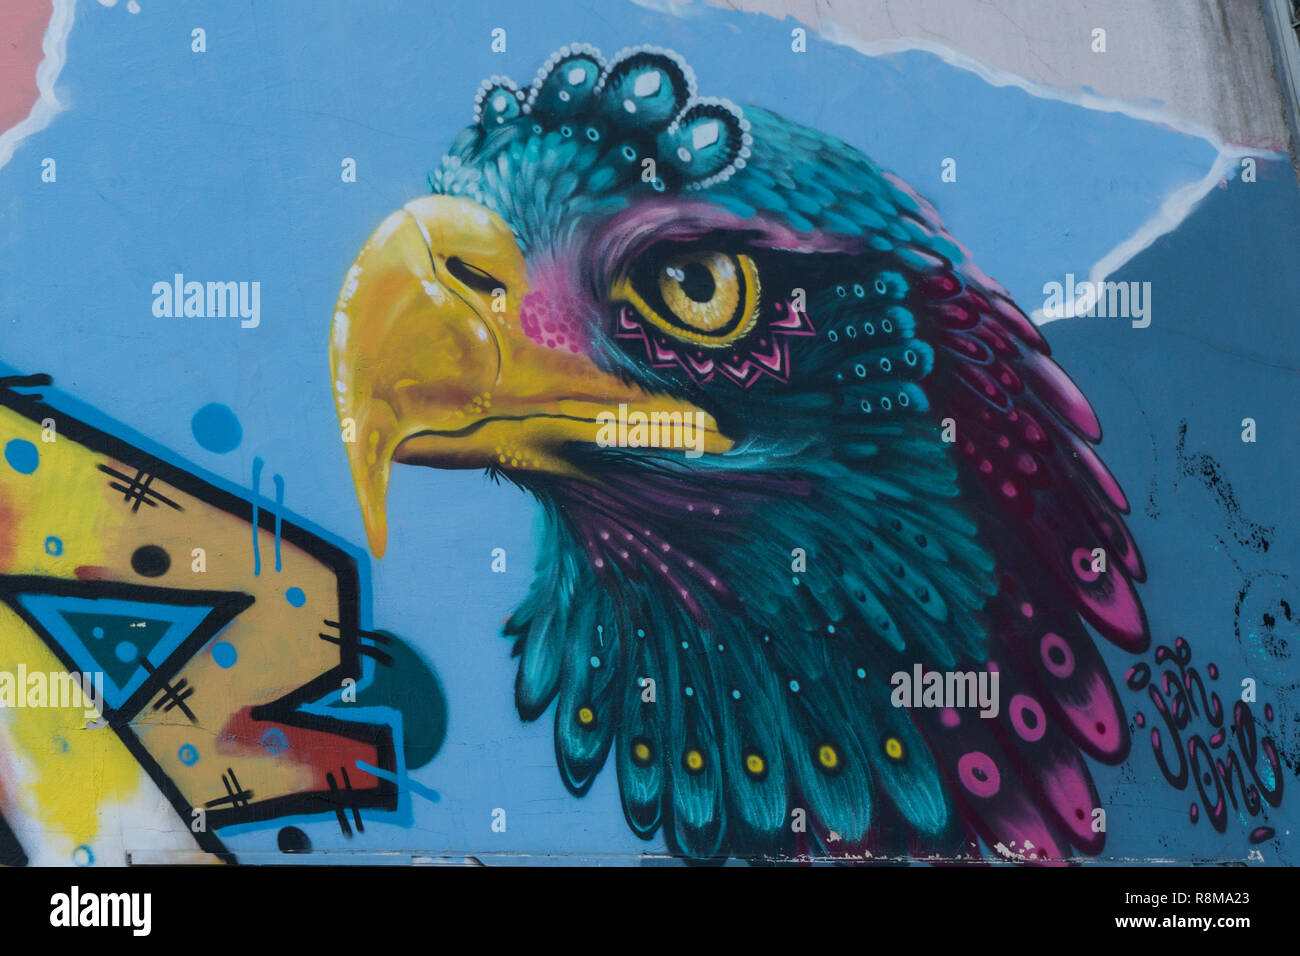 Eagle's head graffiti Stock Photo